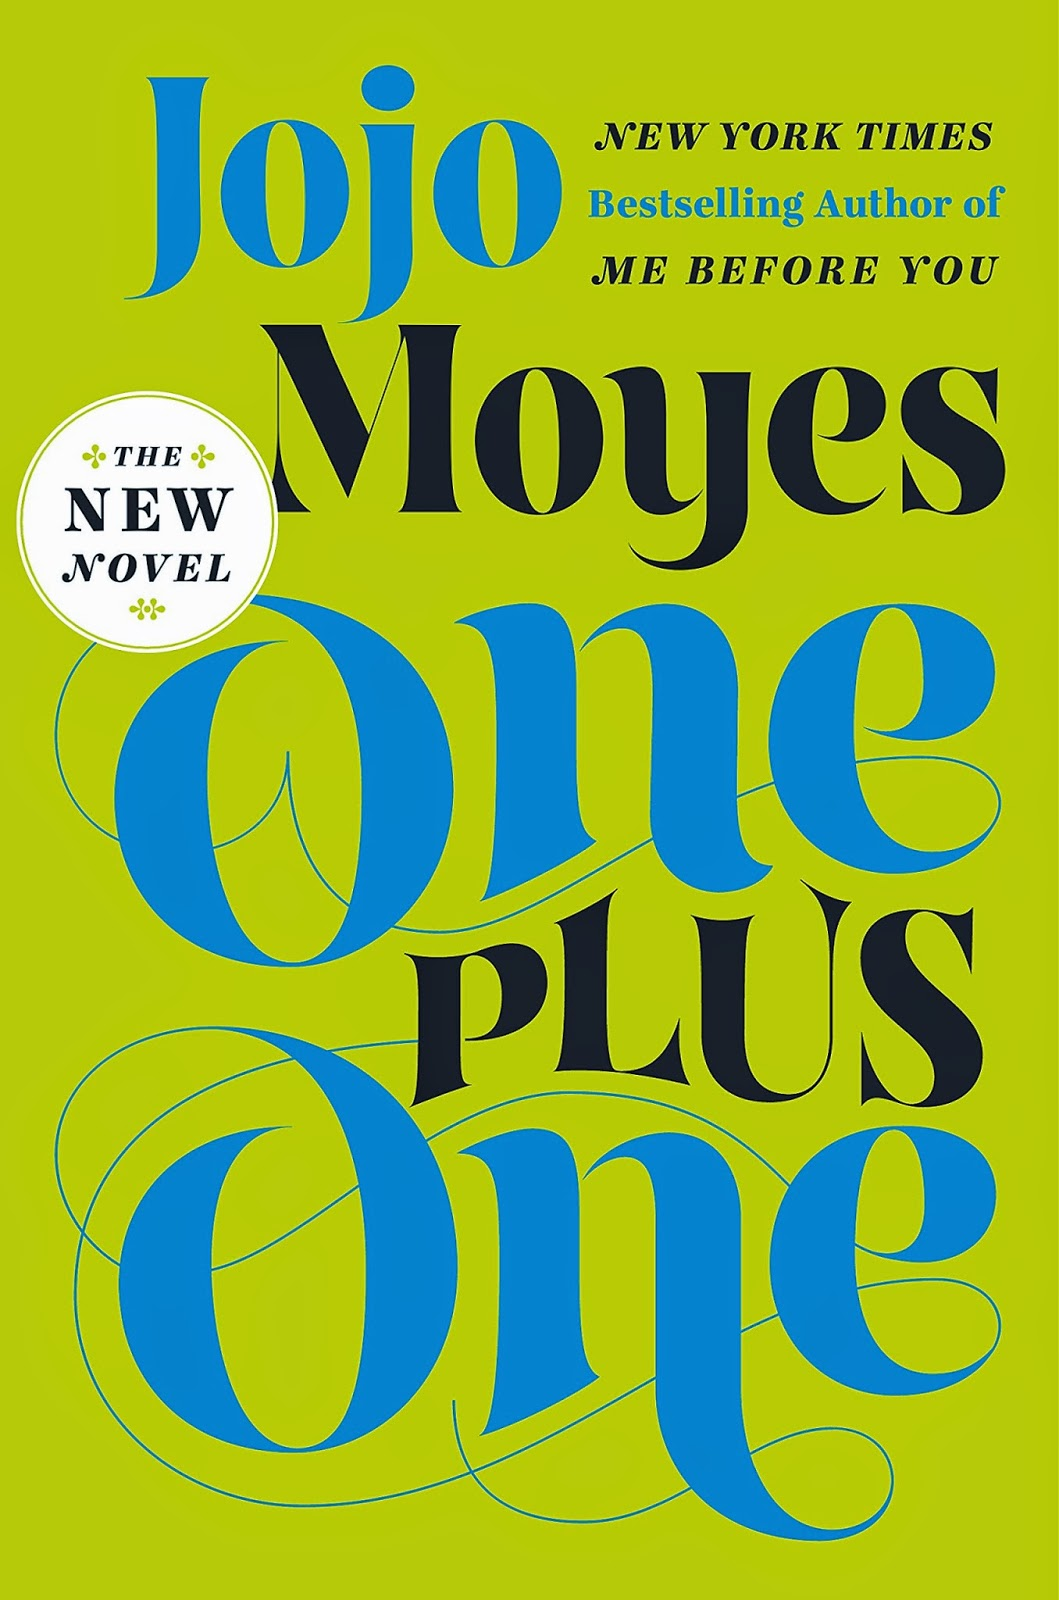 https://www.goodreads.com/book/show/18693716-one-plus-one?ac=1